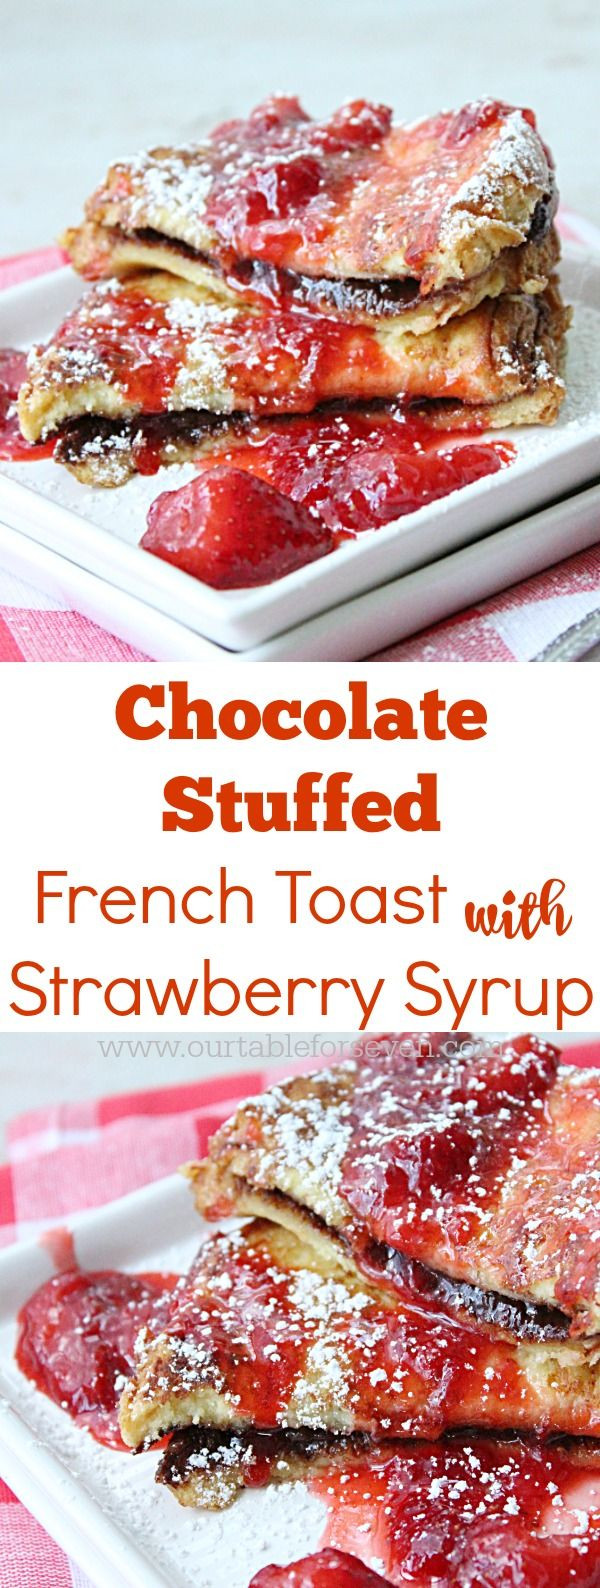 Chocolate Stuffed French Toast with Strawberry Syrup from Table for Seven